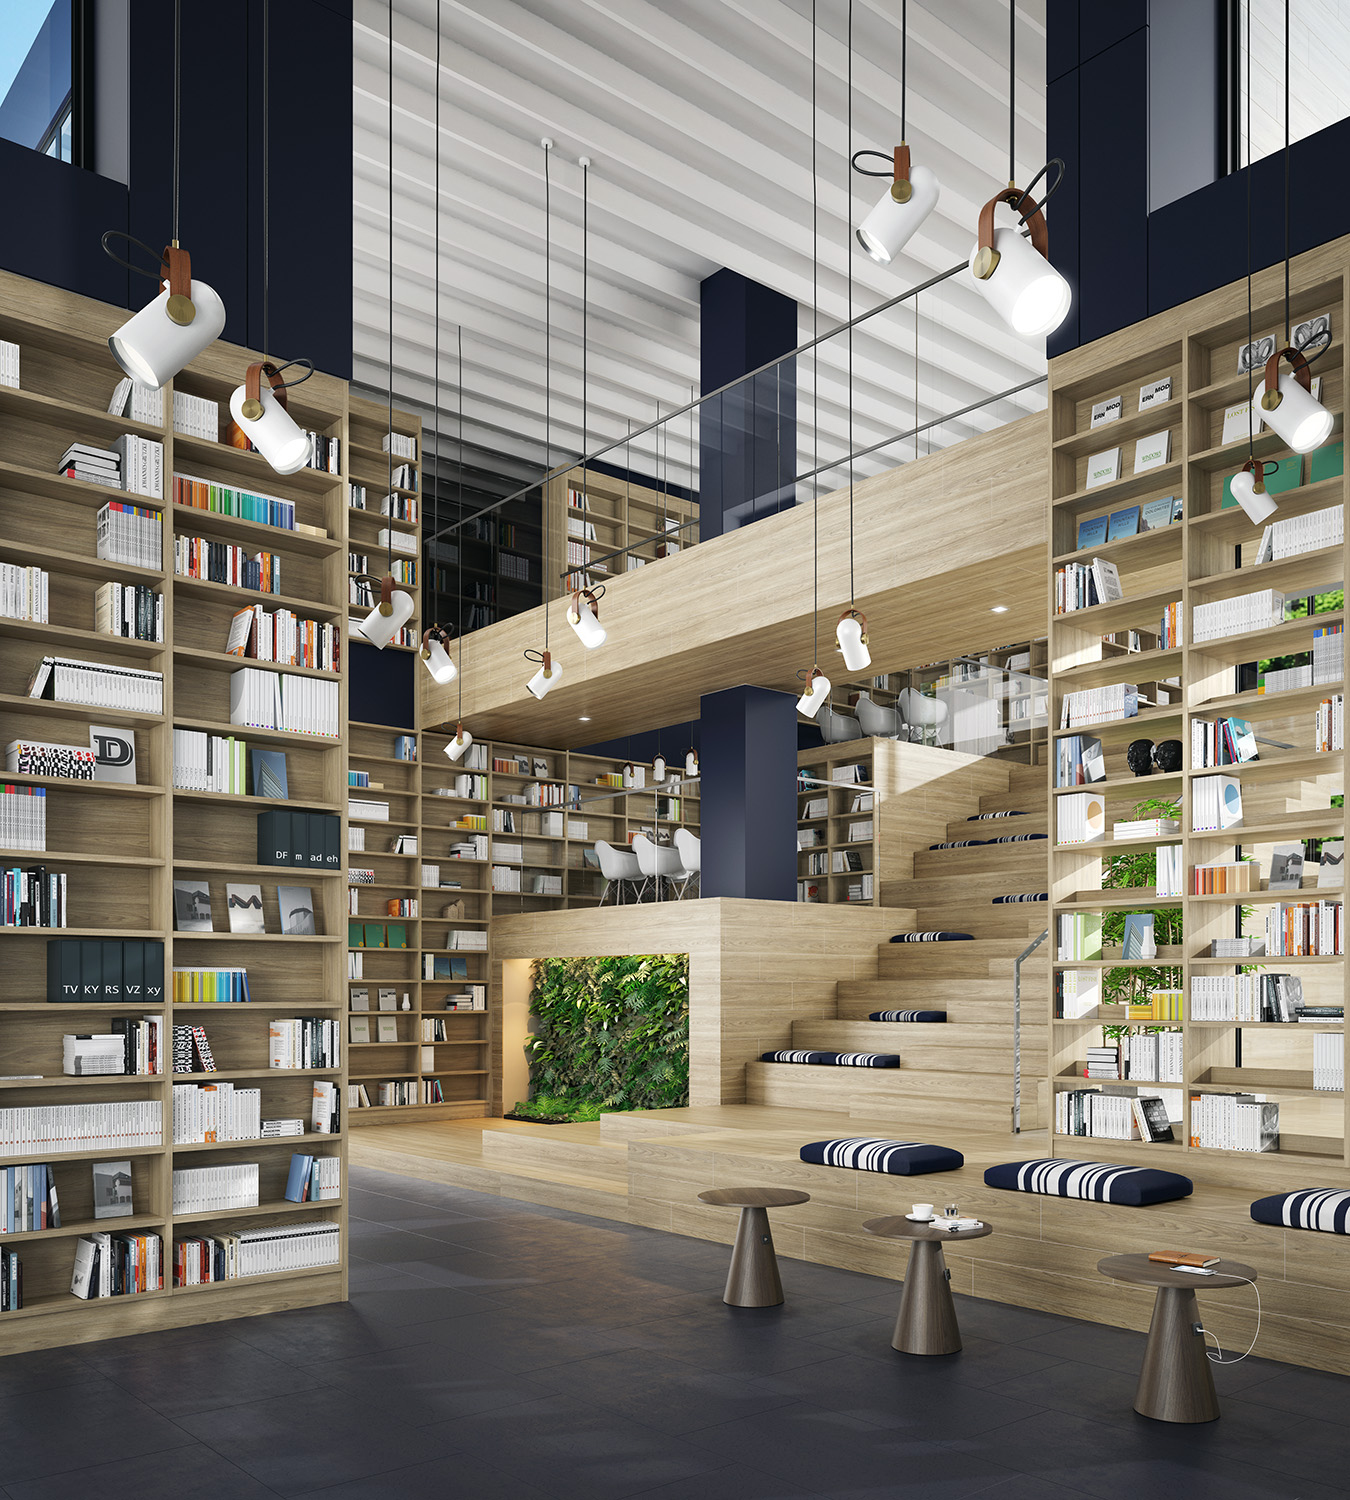 4-Trend-Videos-2020/21-Flexcity-Render-Multifunctional-Library-Eclectic-Trends